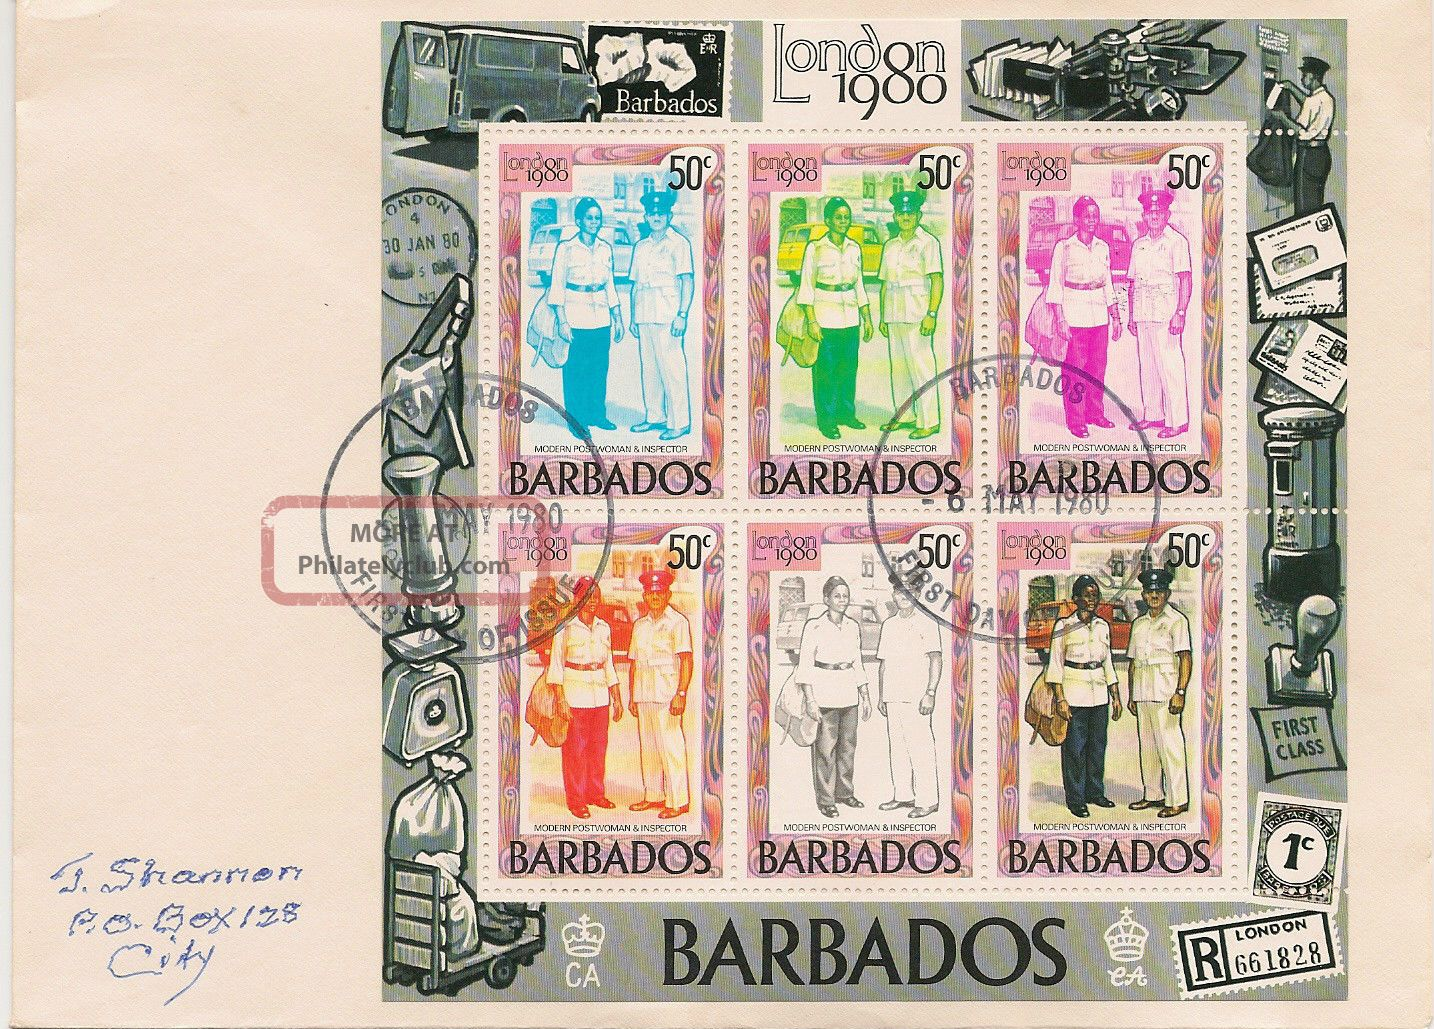 Barbados,  Fdc Souvenir Sheet Of 6,  Modern Postwoman & Inspector,  6 May,  1980 Caribbean photo